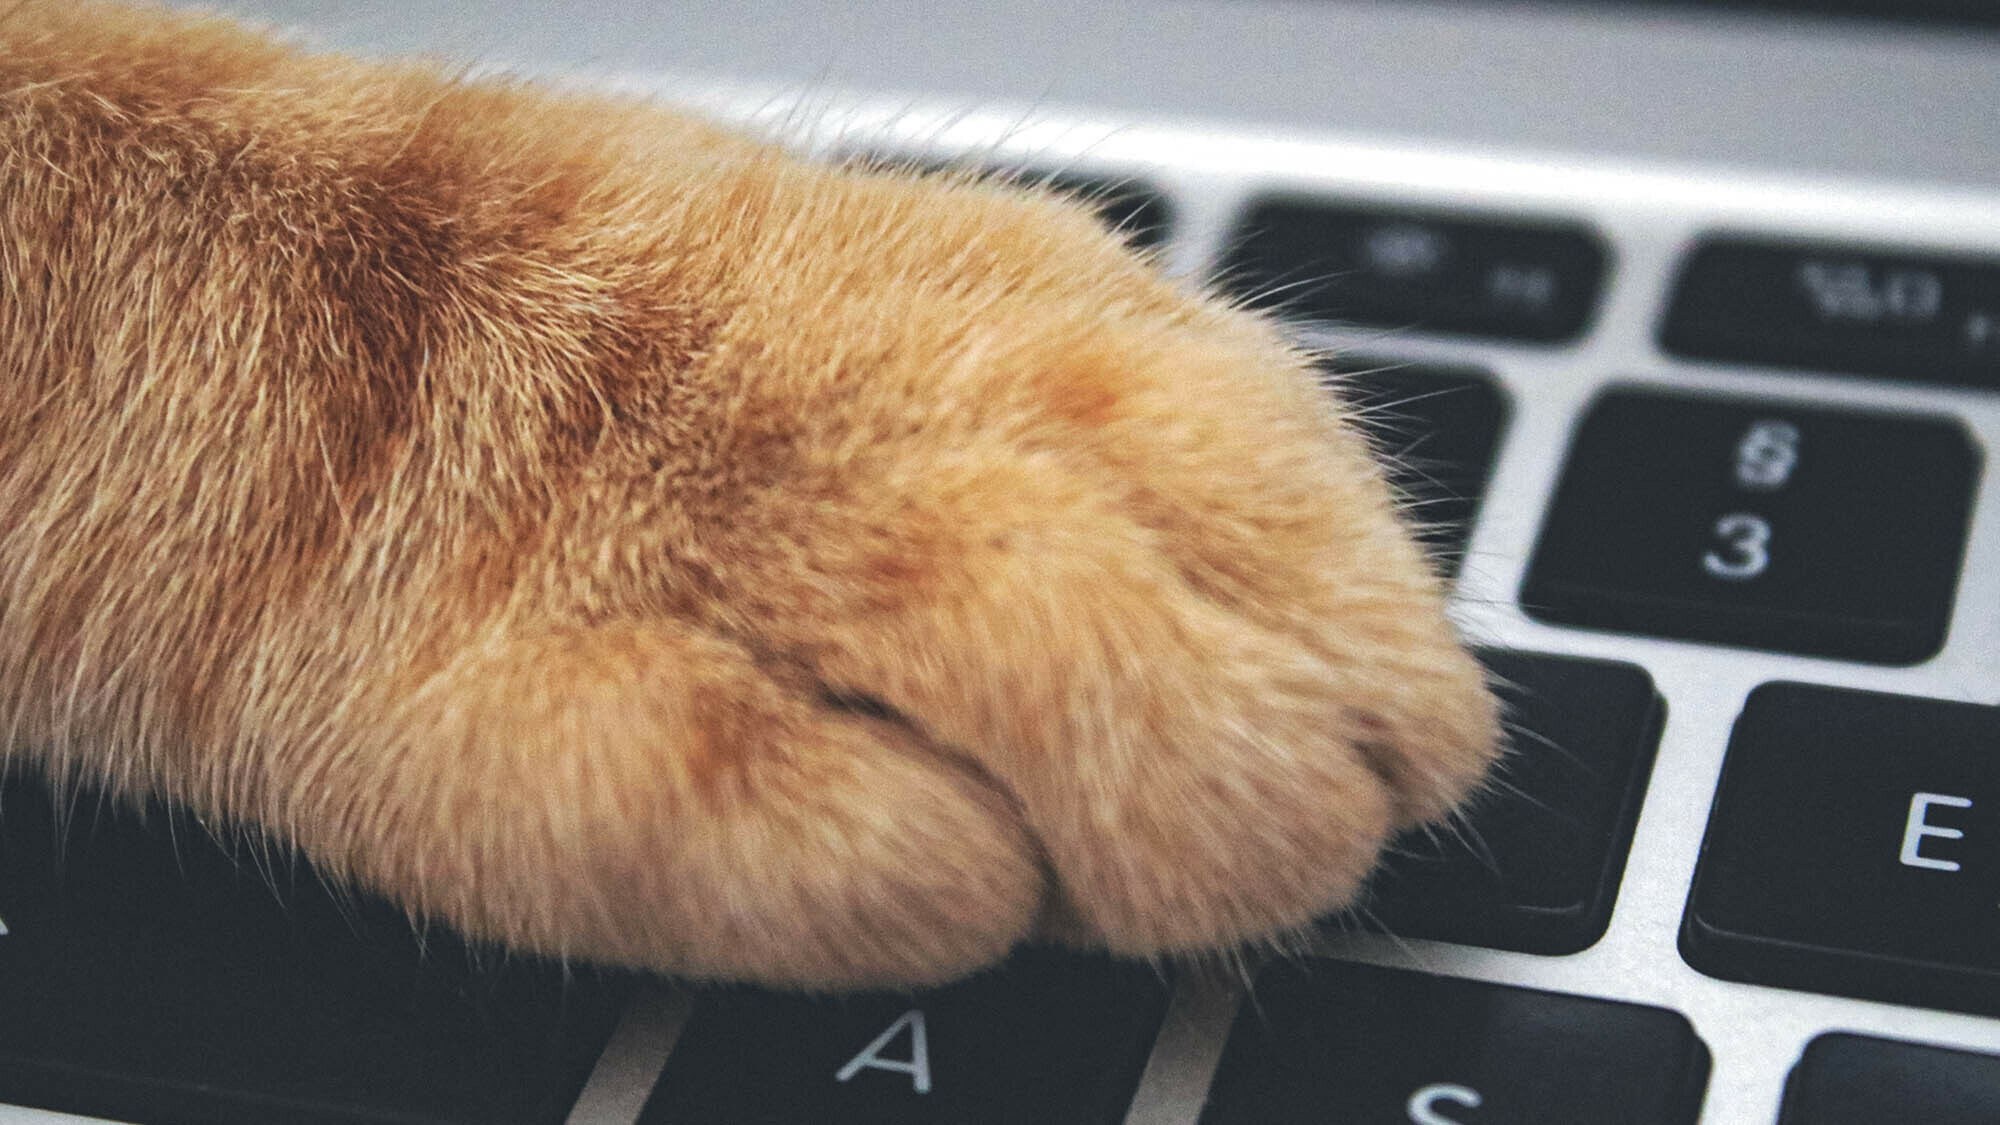 Close up of a cat's paw on a keyboard